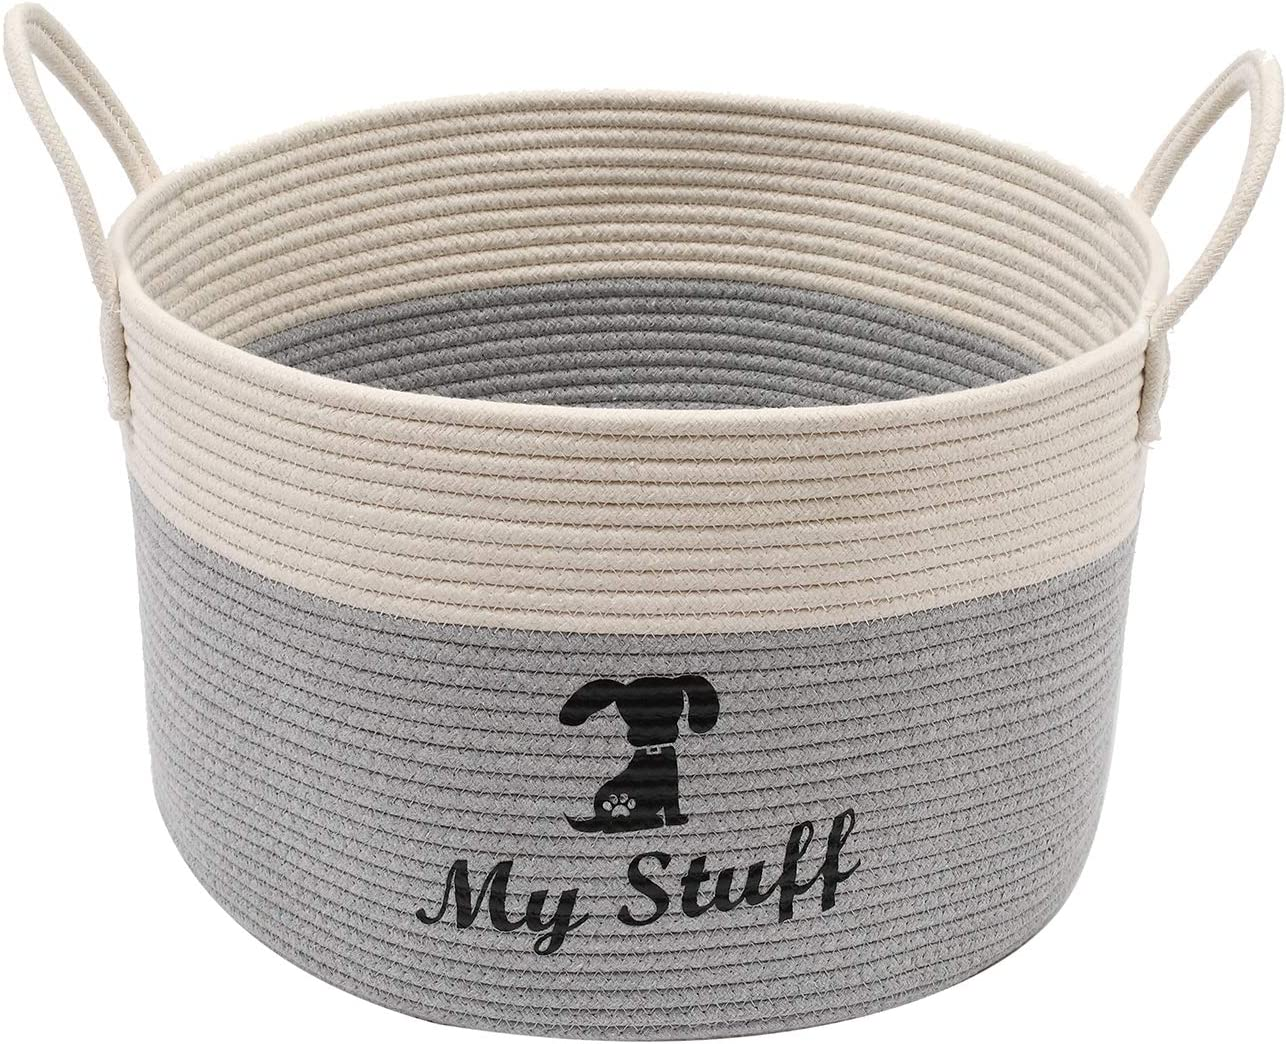 Brabtod Cotton Rope Dog Toy Box Large with Handle, Doggie Toy bin, Dog Toy Basket, Laundry Basket - Idea for organizing pet Toys, Blankets, leashes, Coats, Diapers